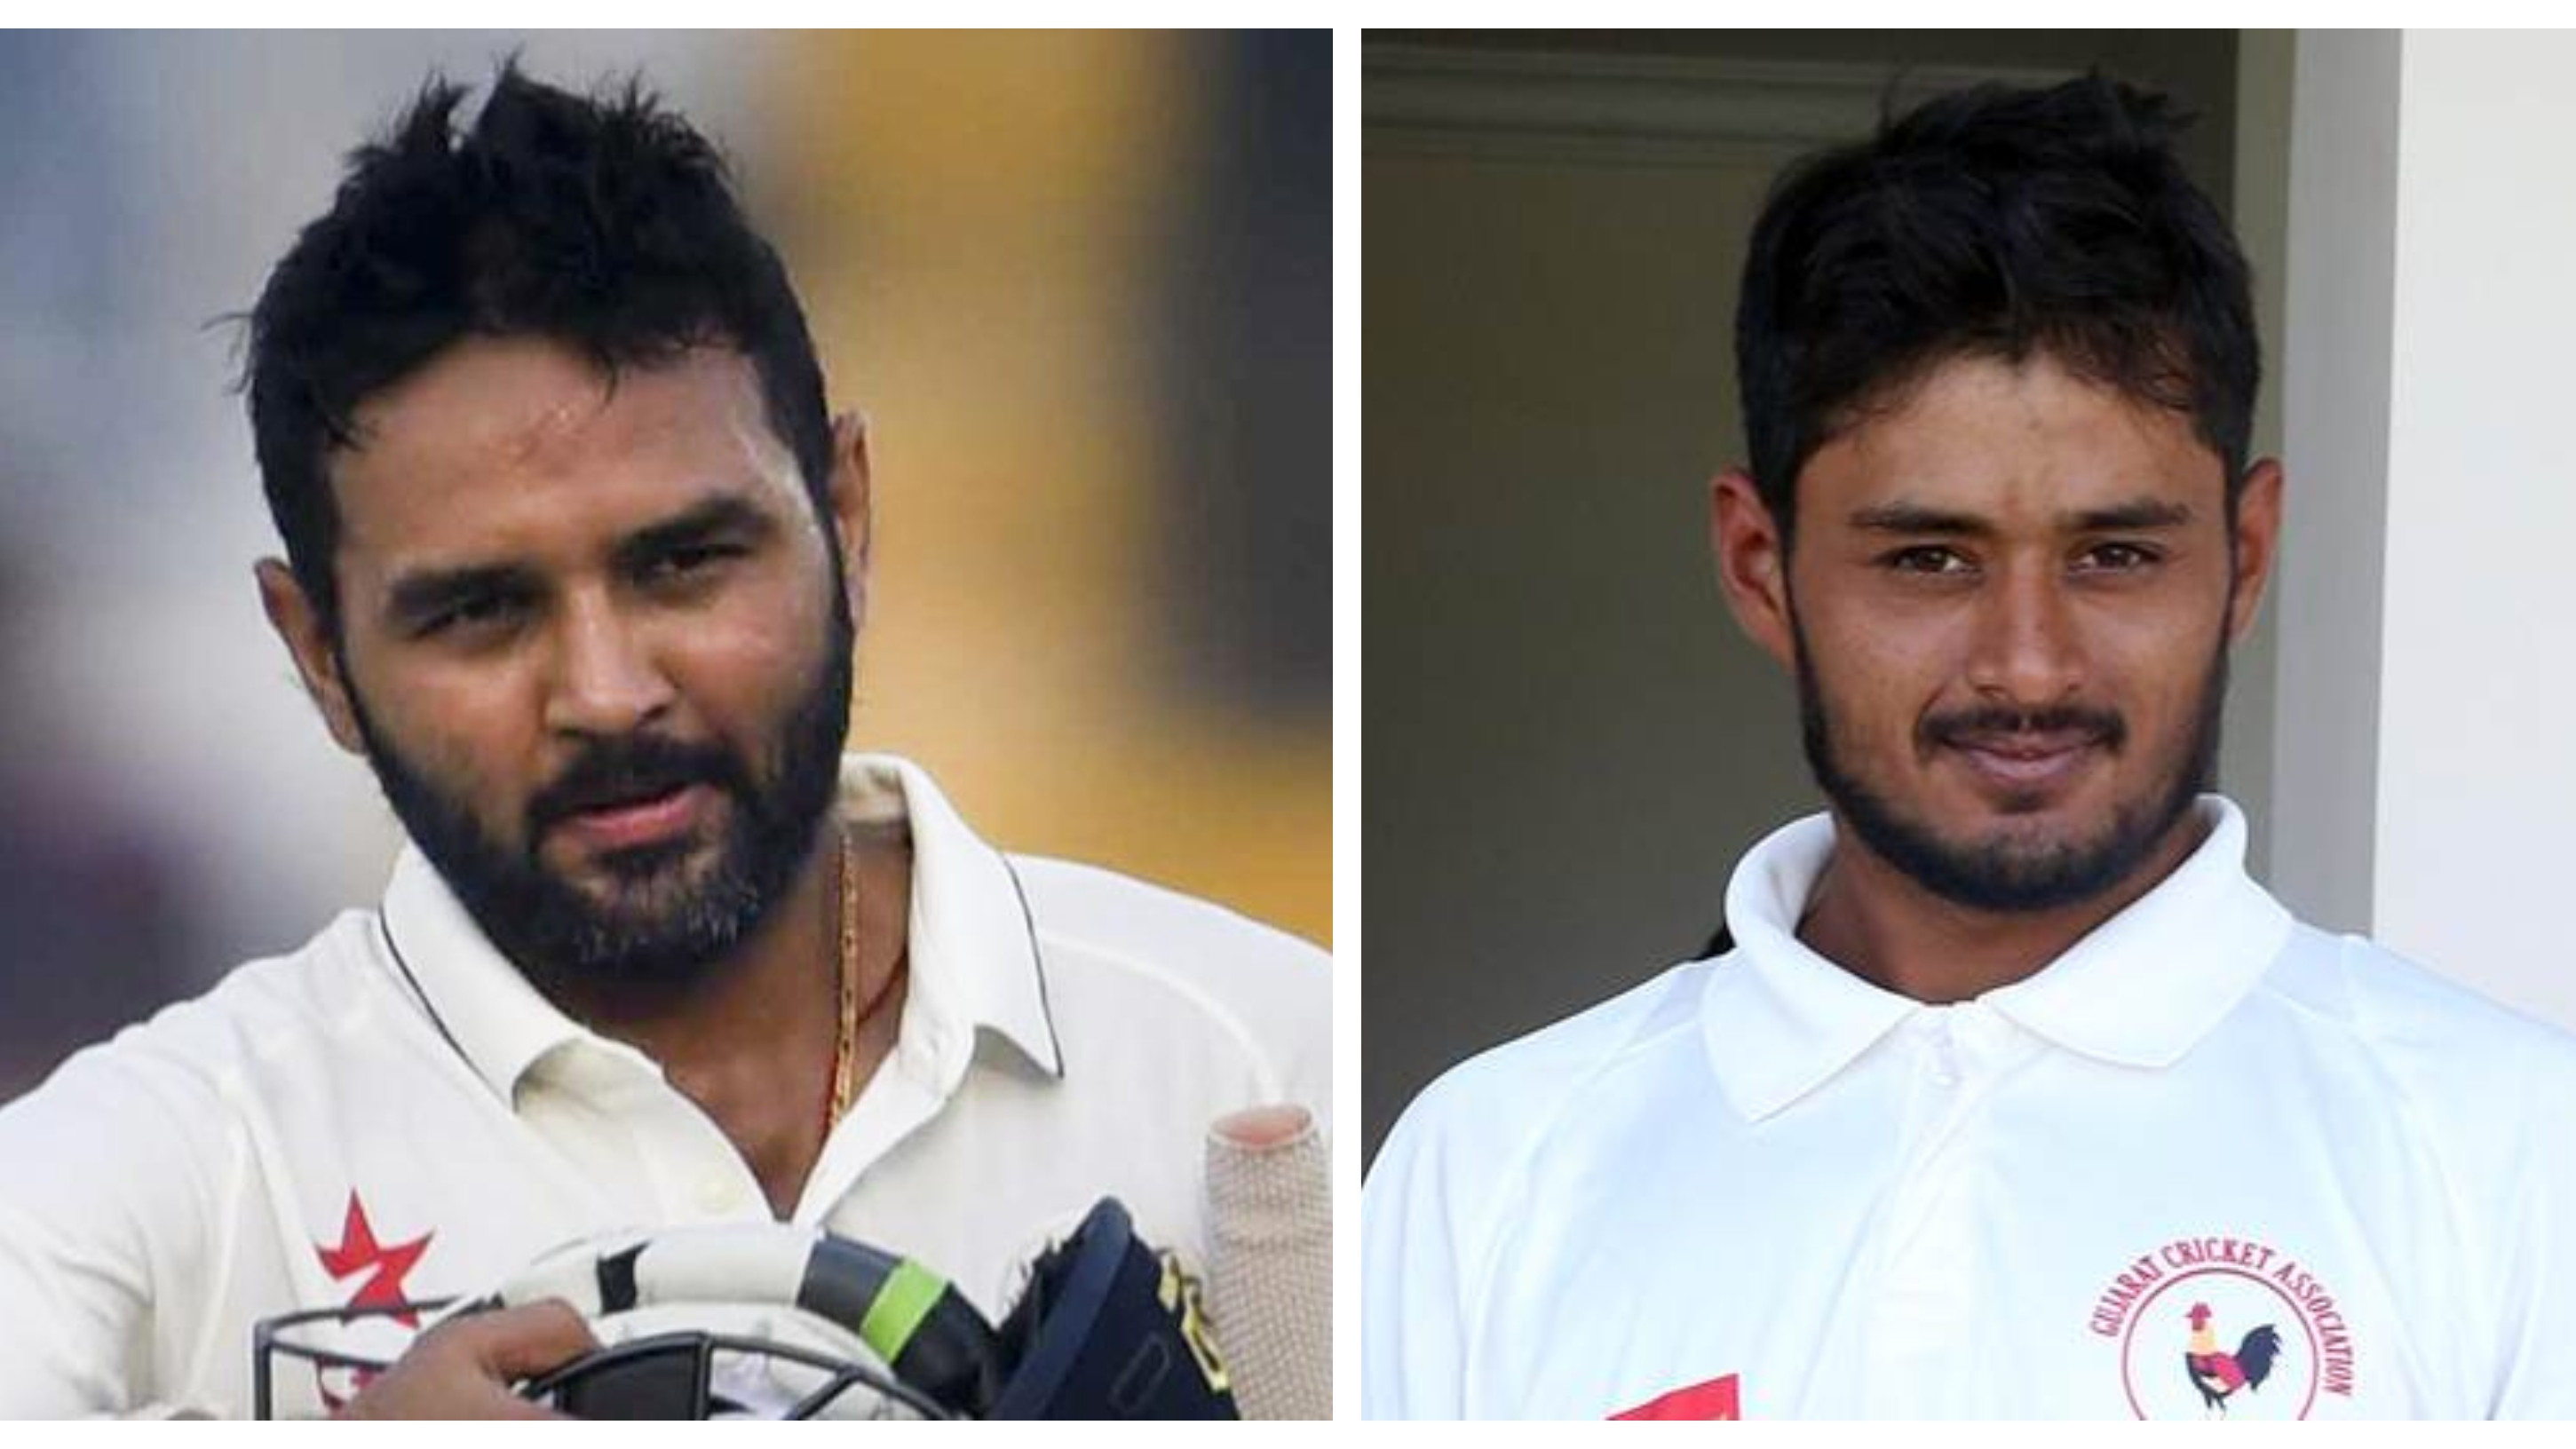 Ranji Trophy 2018-19: About time Priyank Panchal is given higher recognition, says Parthiv Patel